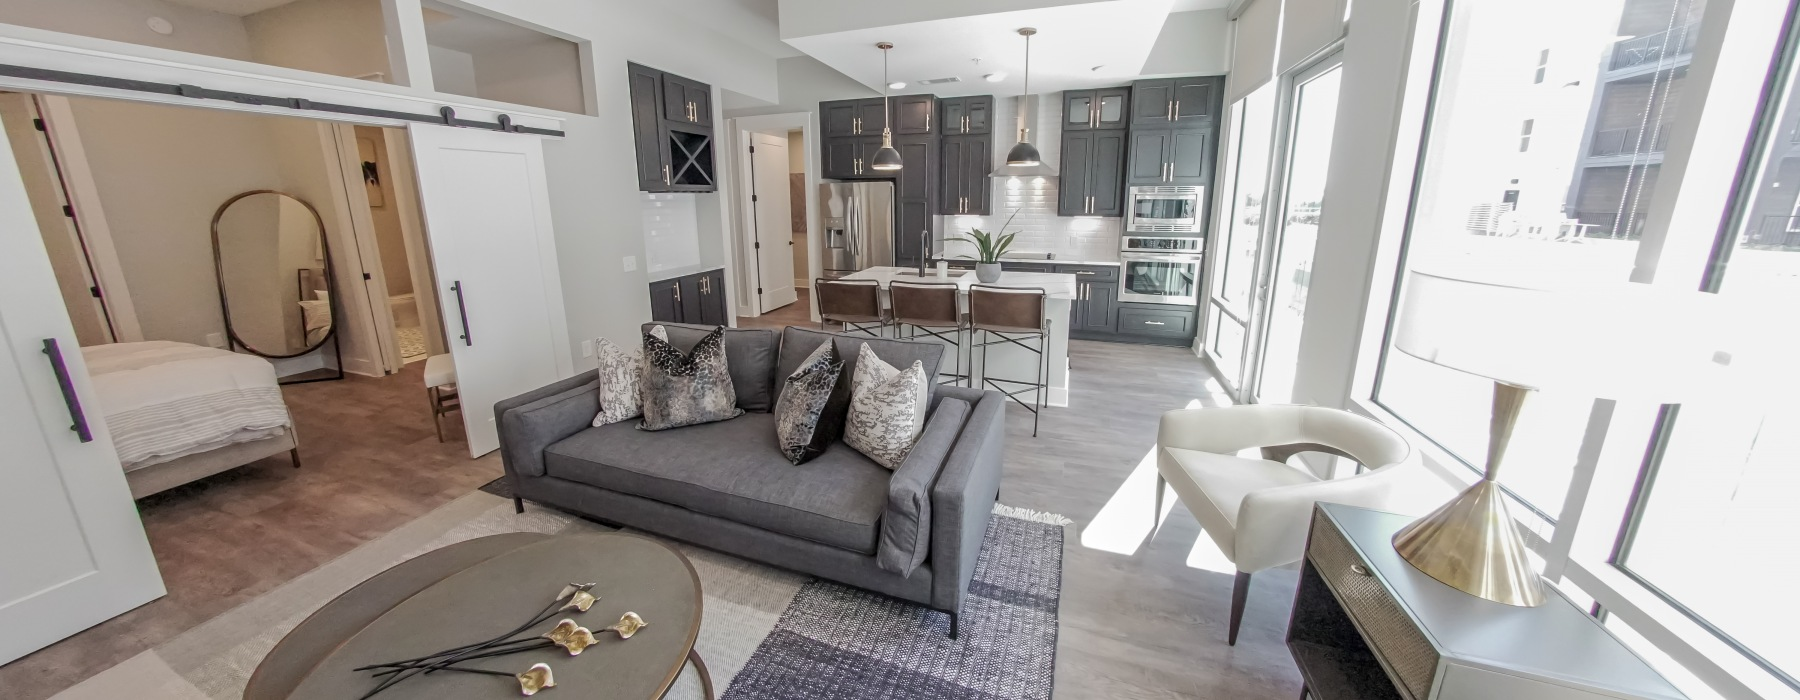 Kitchen and living area island at 500 West Trade in Charlotte, NC